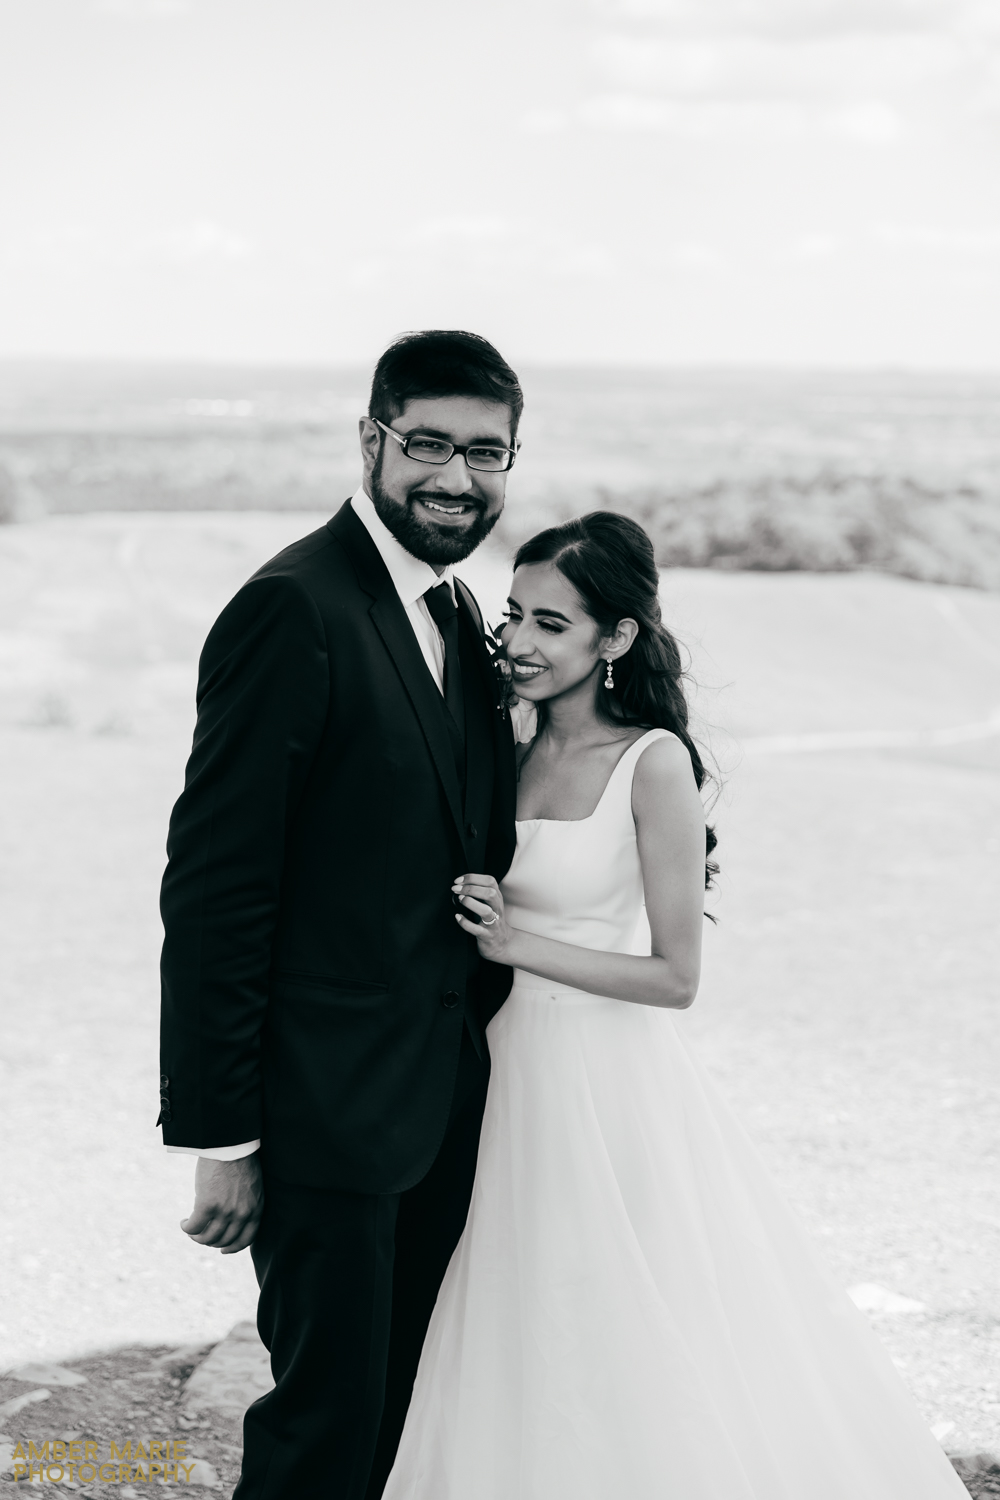 Candid black and white portrait of bride and groom in countryside